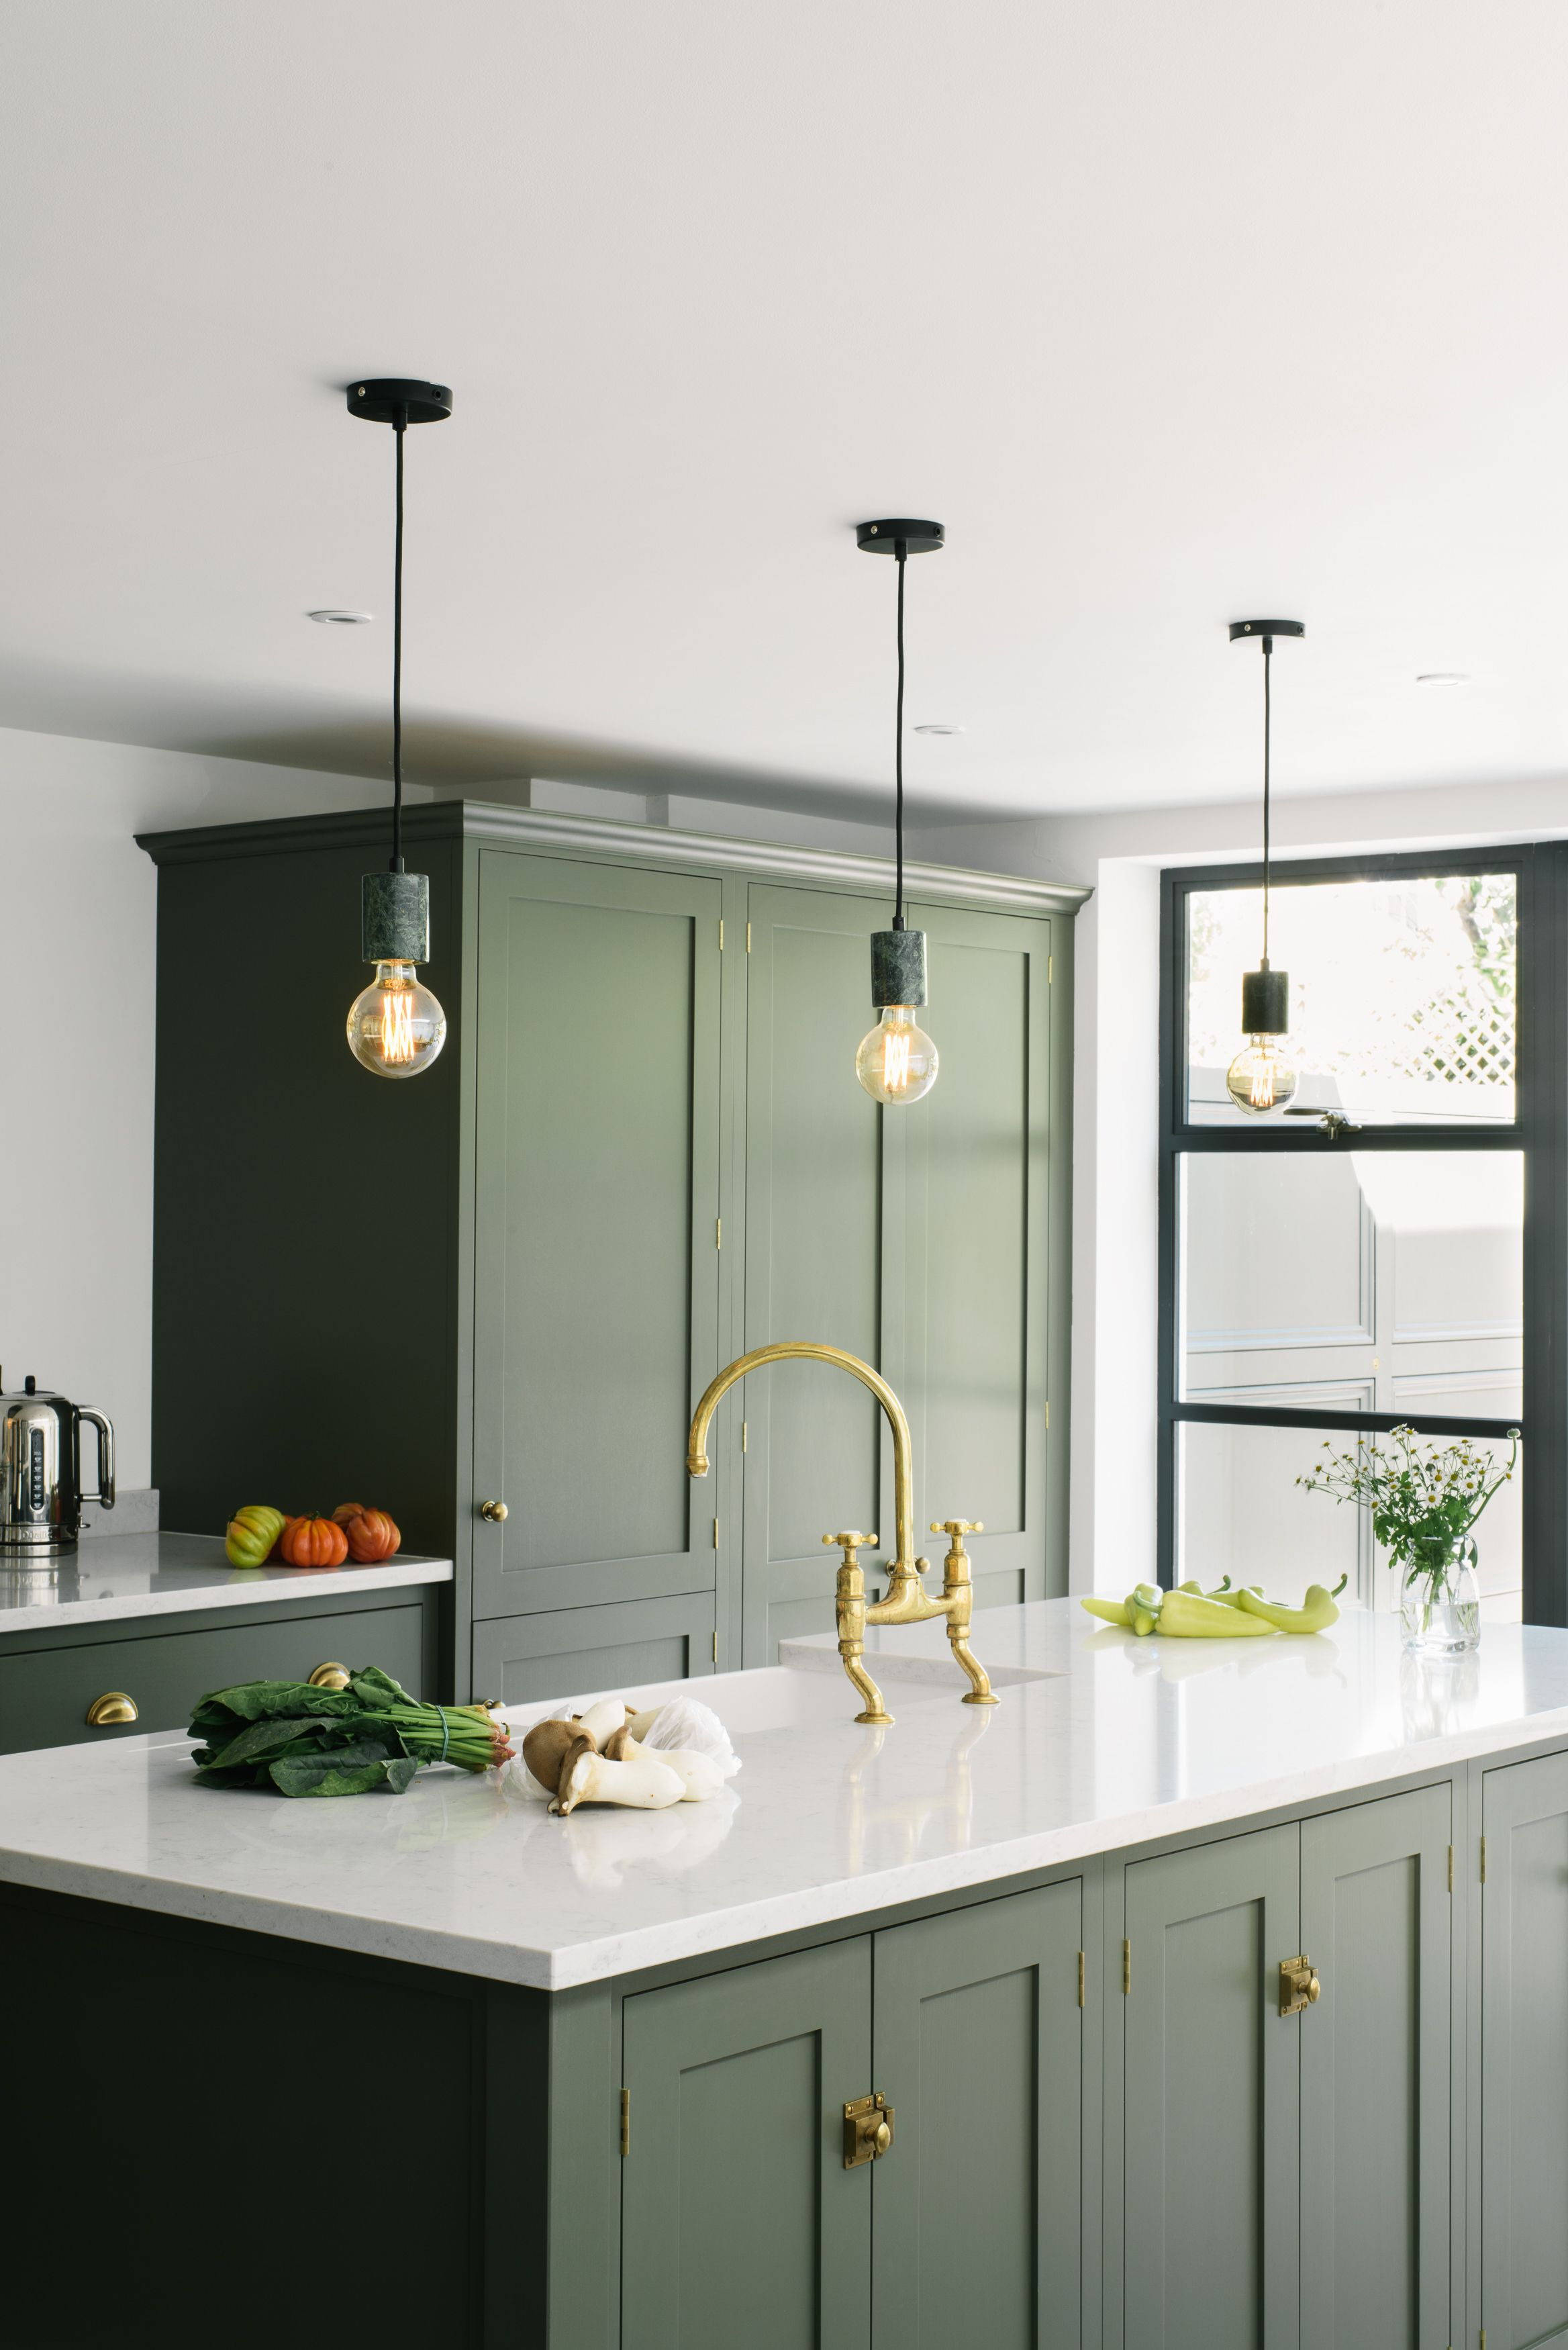 Here is one of our latest Shaker projects, a Kitchen in Hove! It has been painted in a bespoke shade, a beautiful dark olive that works so well with the aged brass hardware and tap. The three hanging pendant bulbs are a cool addition and add a modern touch to this space.